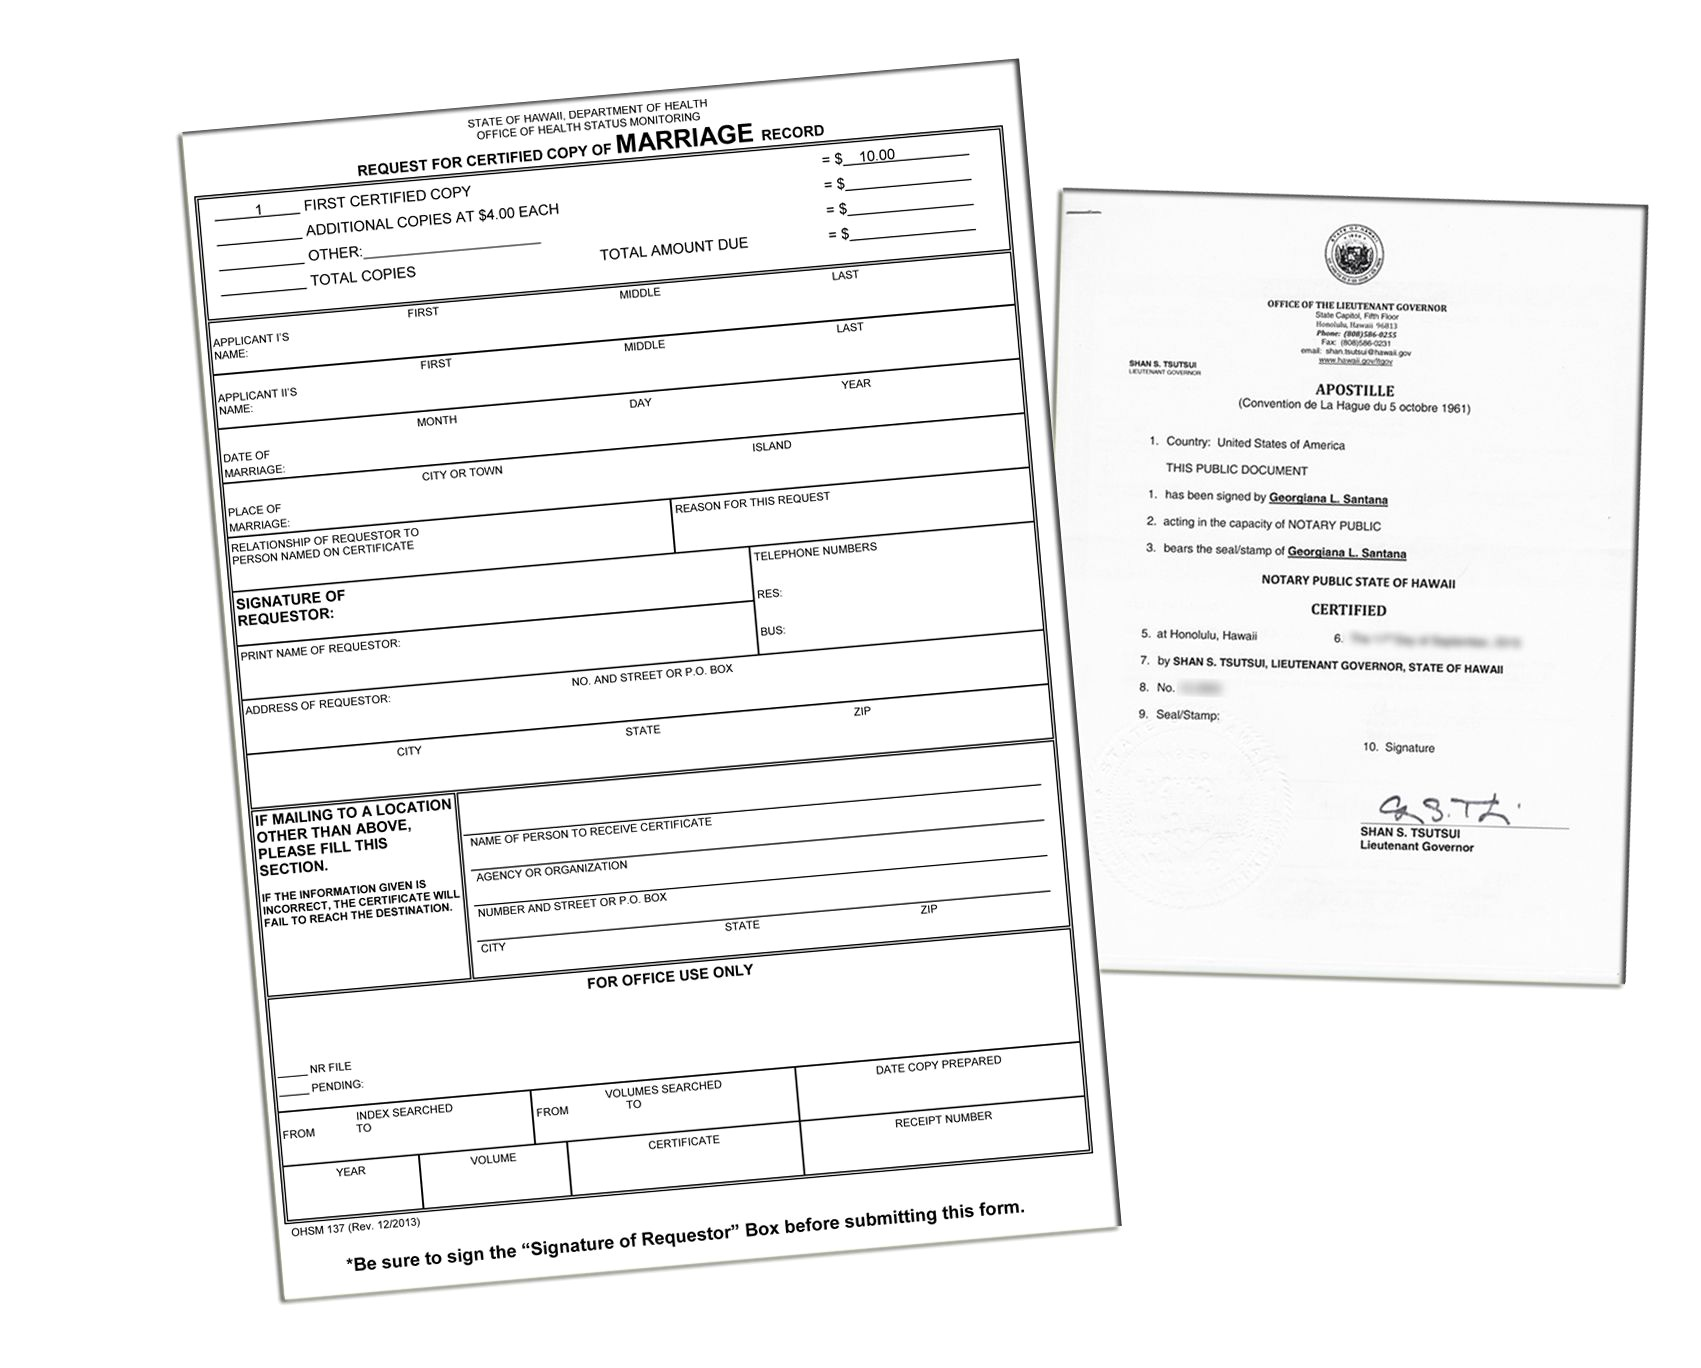 Notary Marriage Certificate Best Of Hawaii Health Department Certification Application Form You Need To